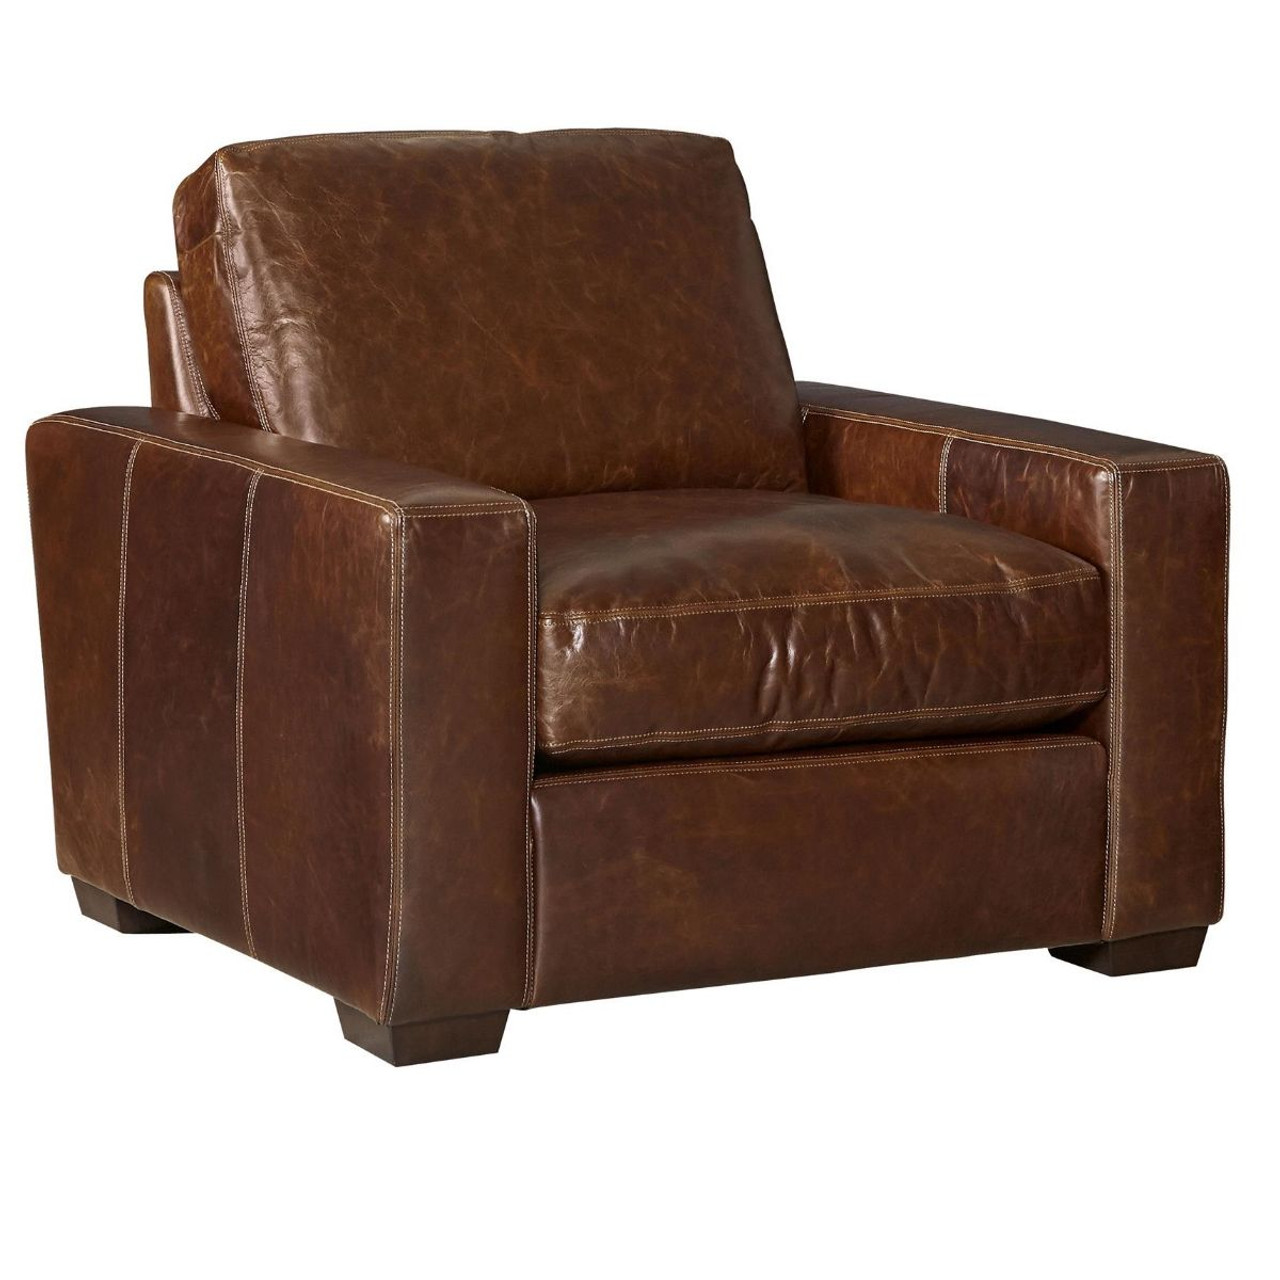 leather slipper chair chocolate dog wheel oliver brown accent zin home